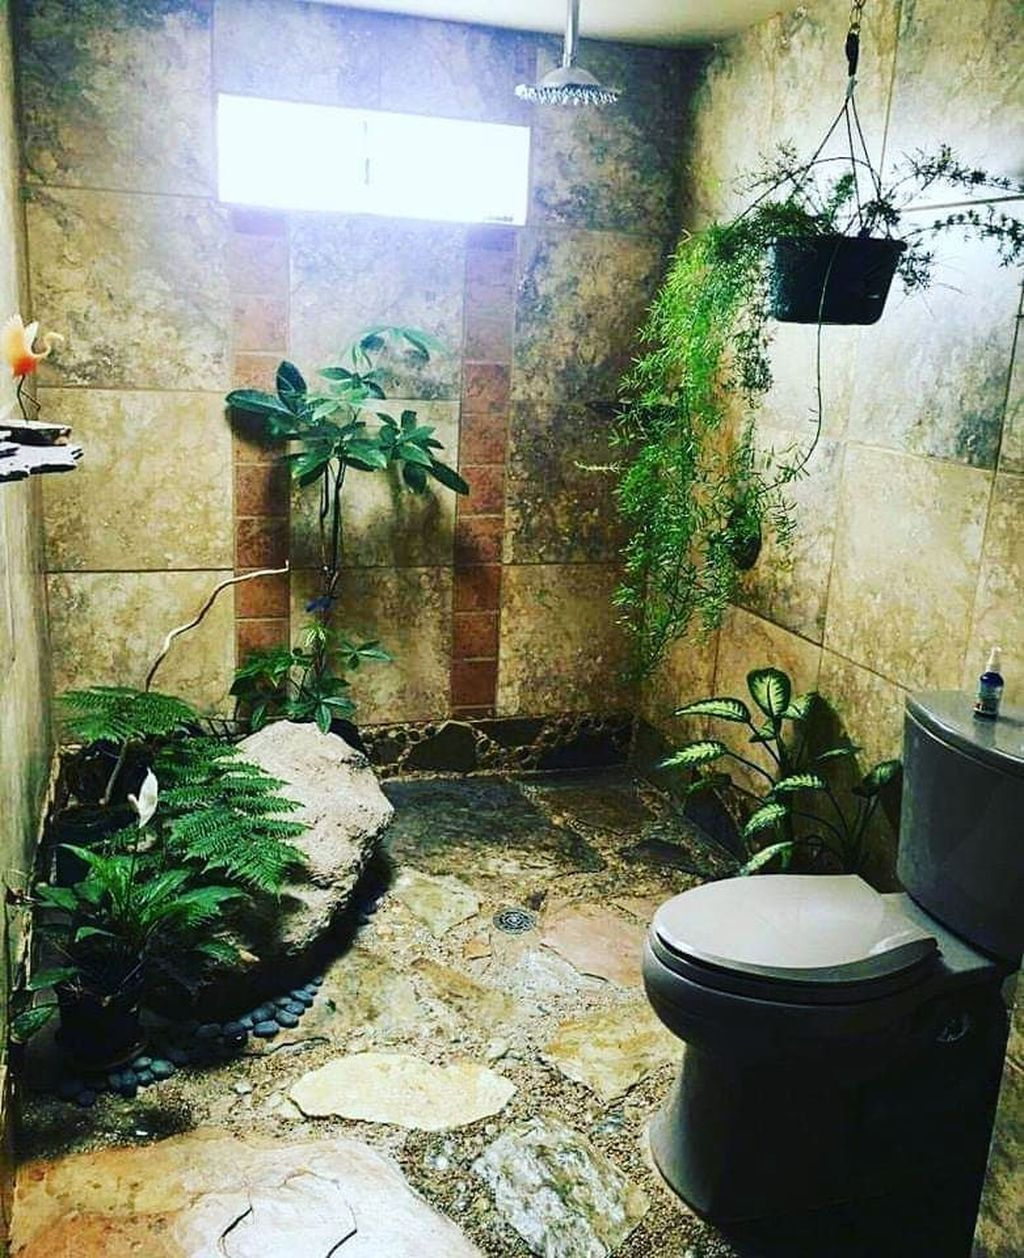 The Best Jungle Bathroom Decor Ideas To Get A Natural Impression 23